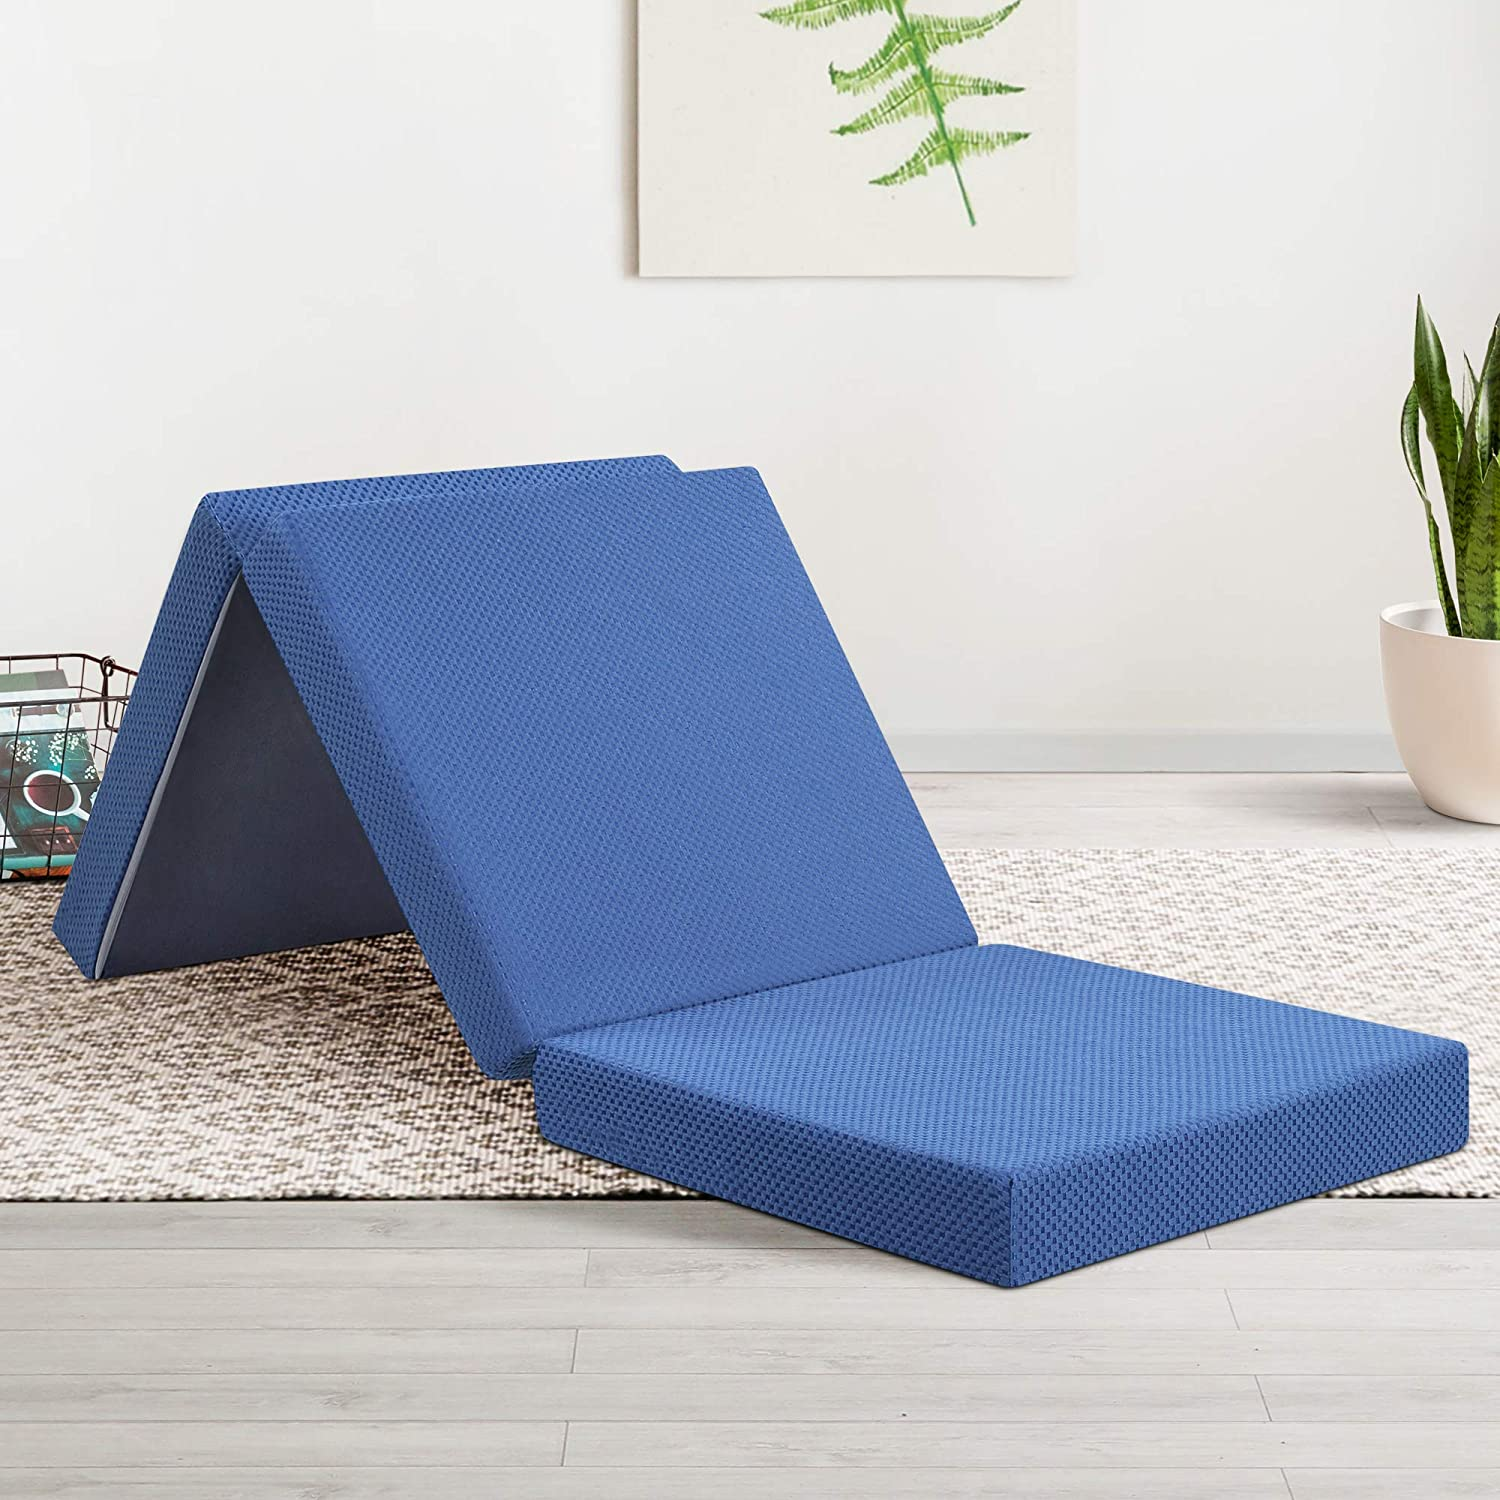 Olee Sleep Tri-Folding Memory Foam Topper, 4'' H, Blue: Furniture & Decor